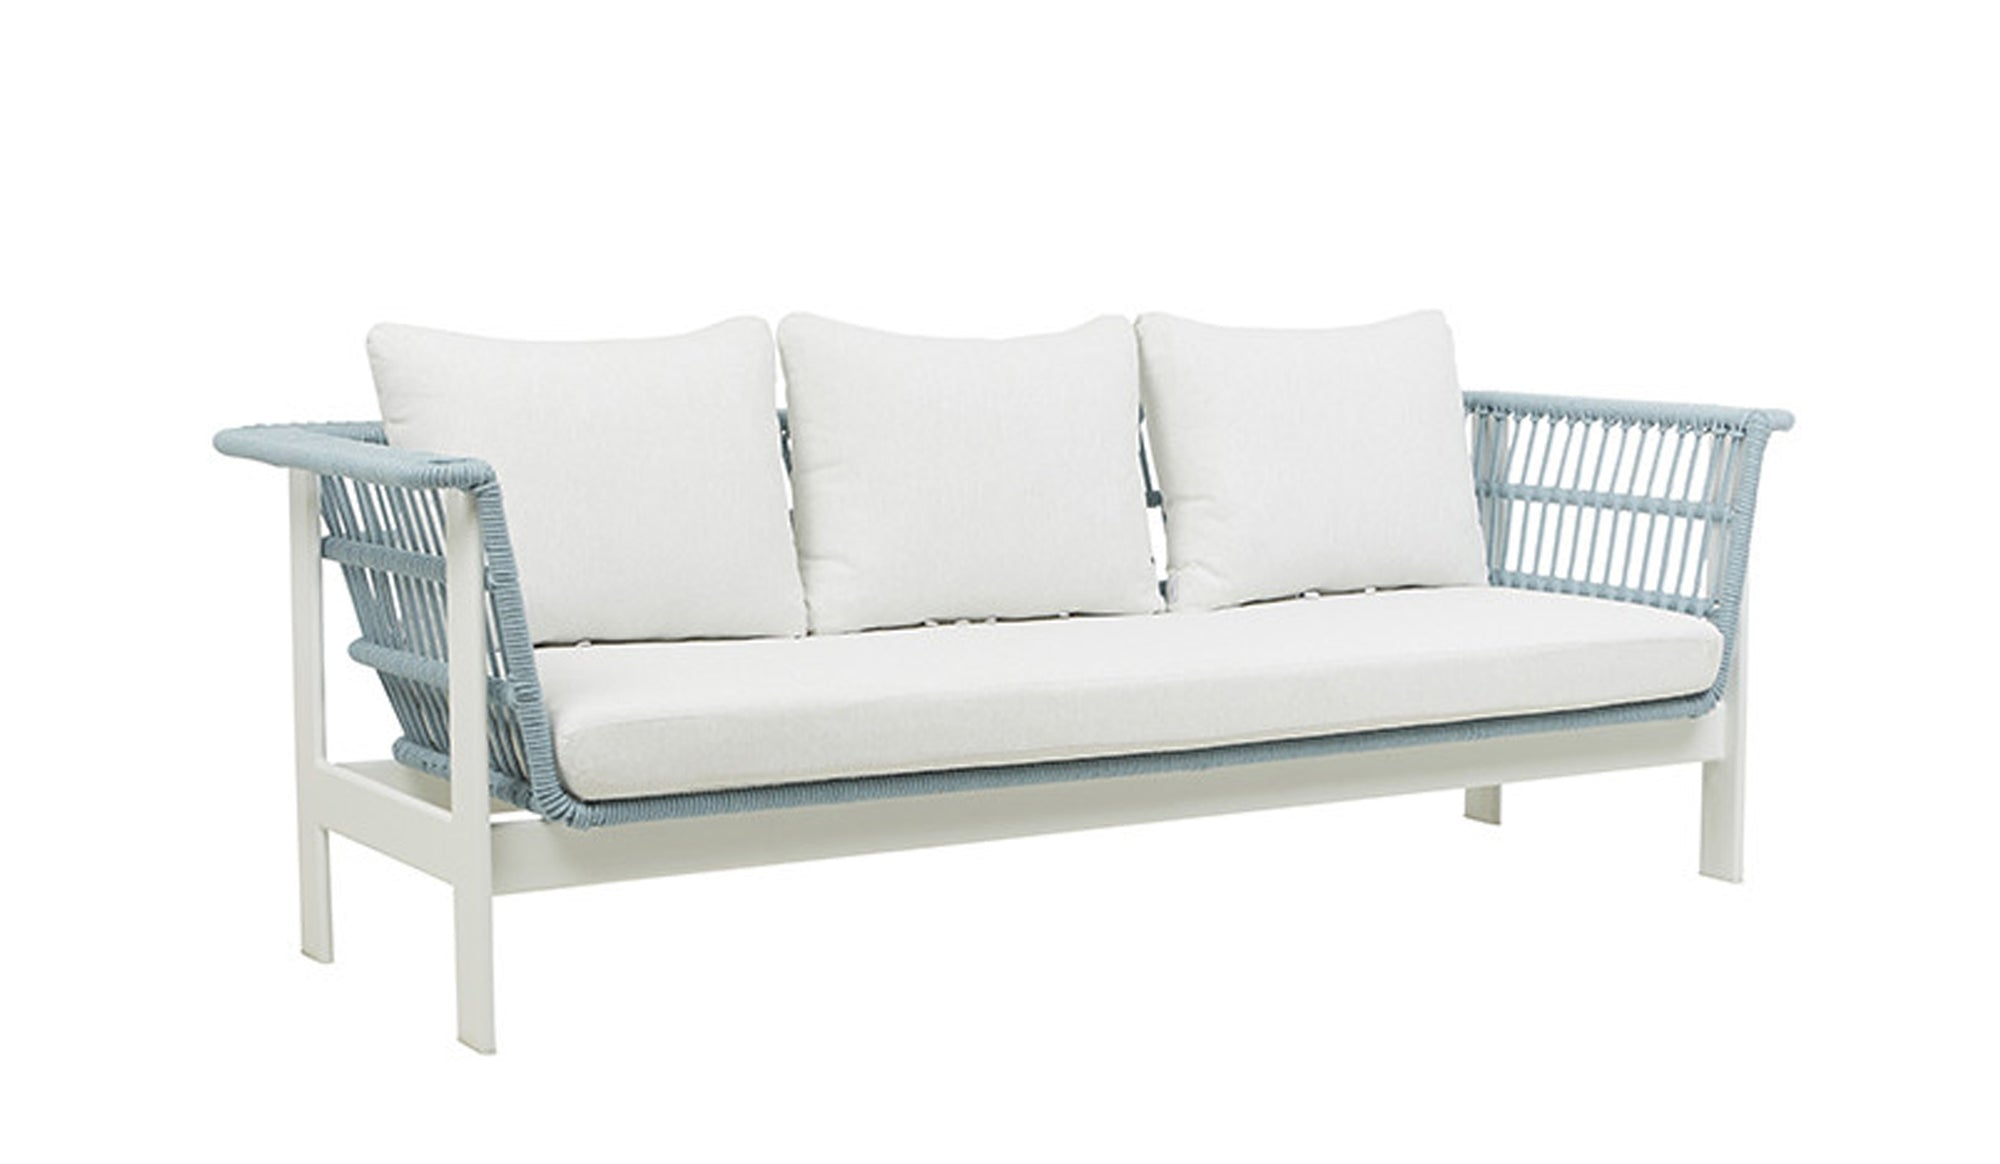 Lagoon 3 Seater Sofa